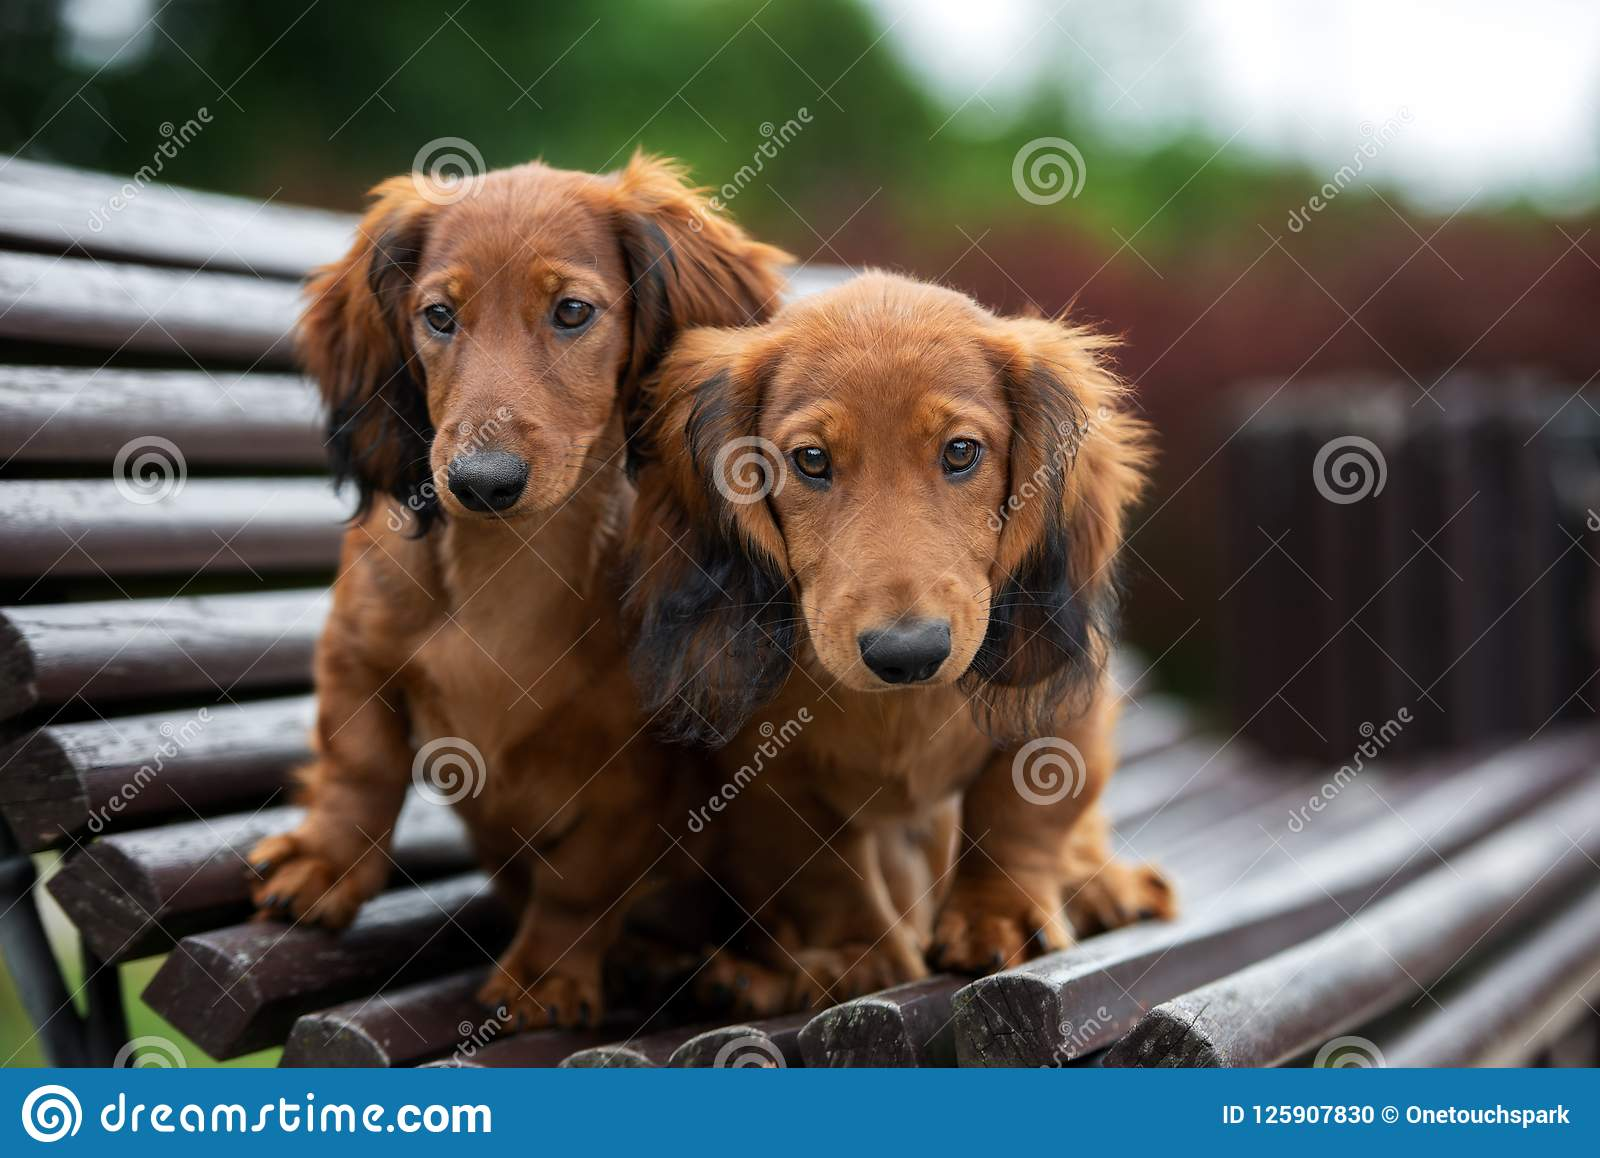 2 994 Haired Puppies Photos Free Royalty Free Stock Photos From Dreamstime